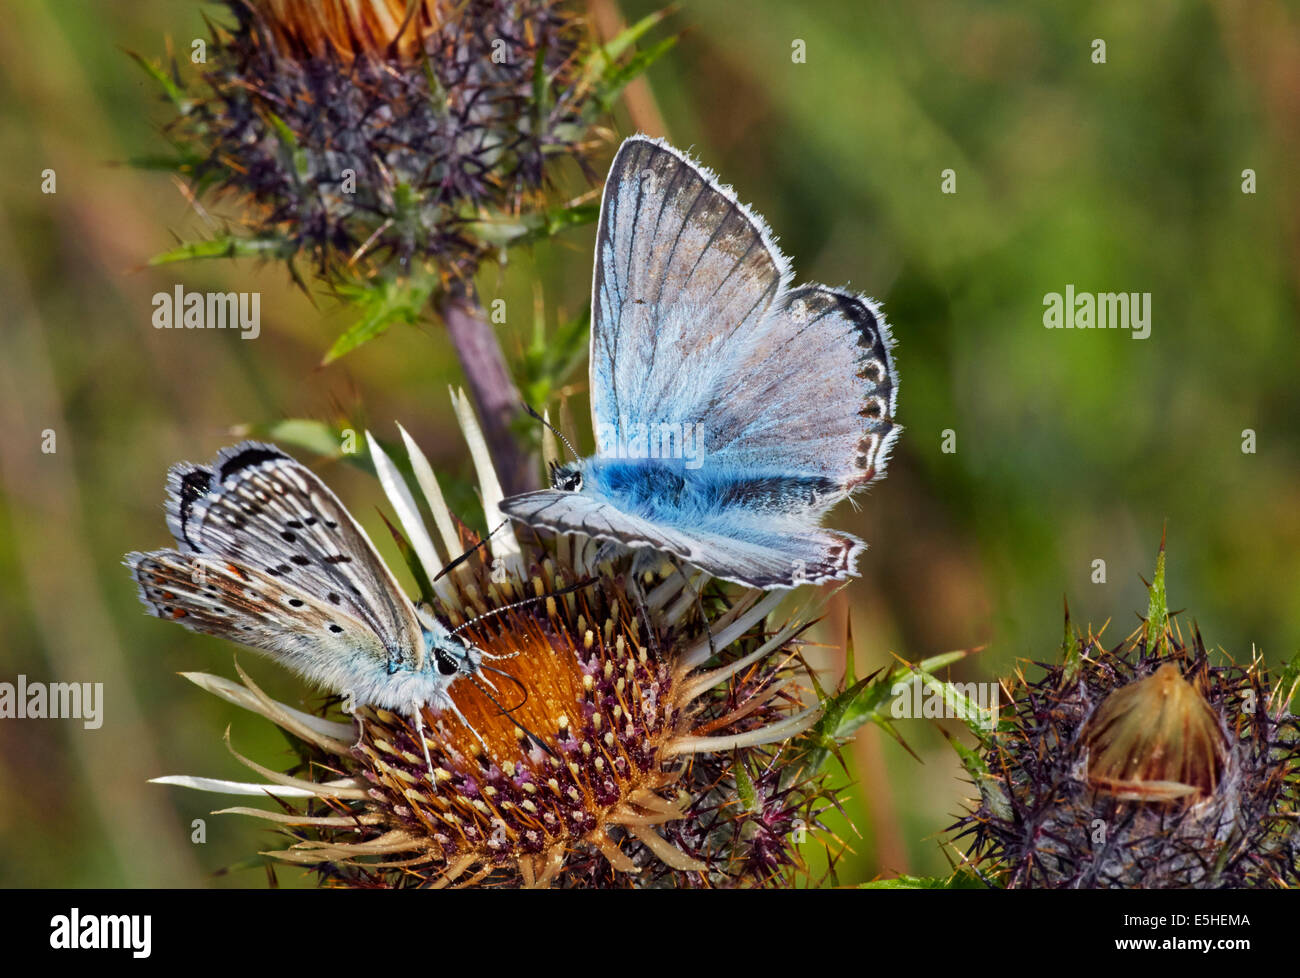 Female (left) and male Chalkhill Blue butterflies on thistle flowers. Denbies Hillside, Ranmore Common, Surrey, - Stock Image